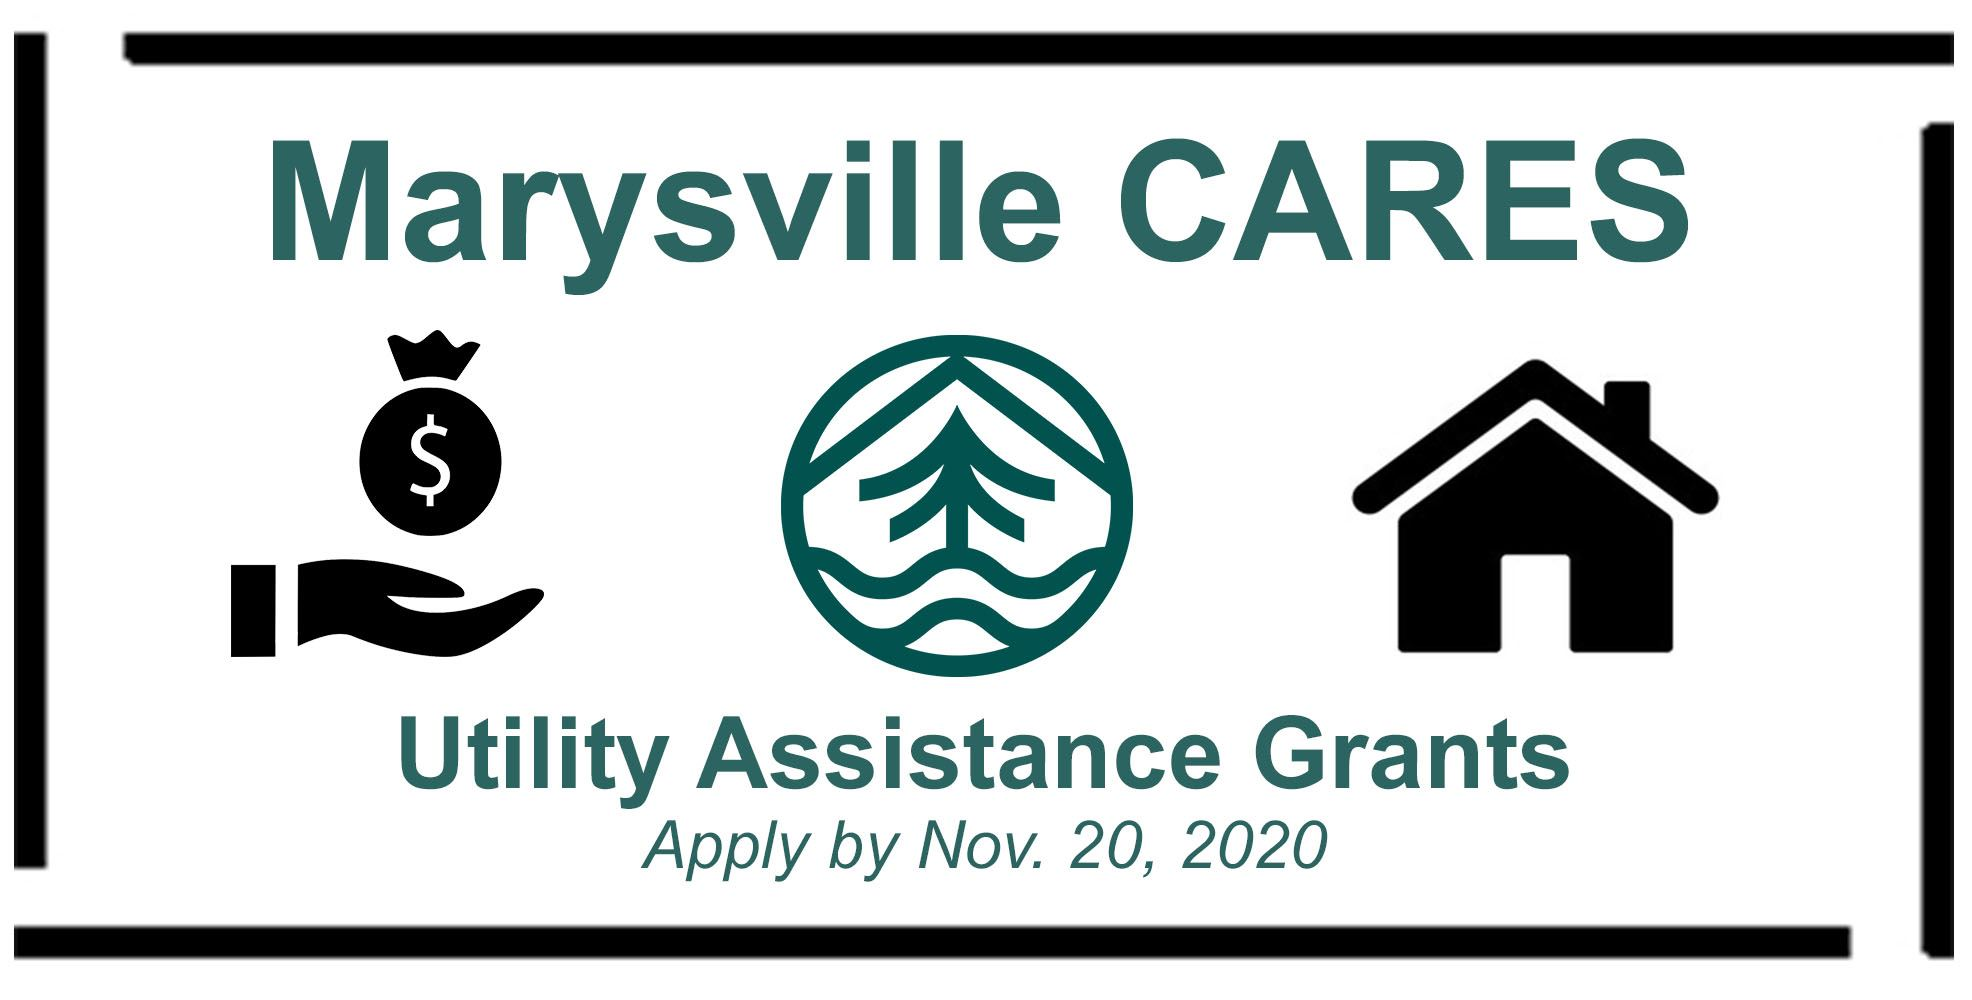 CARES Utility Assistance Grants